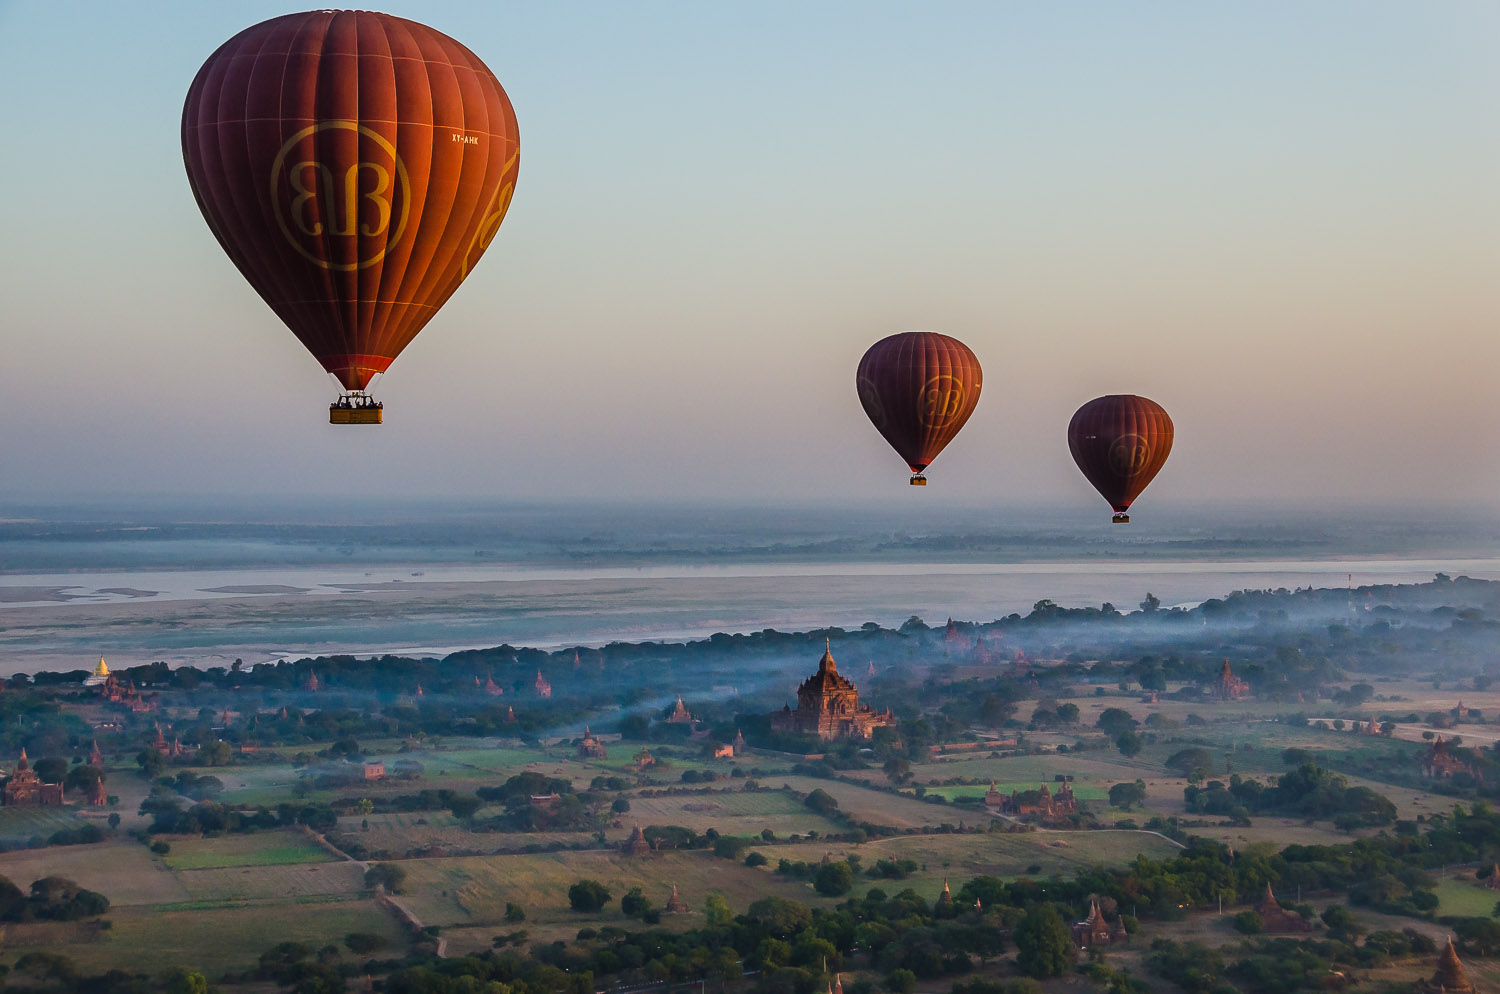 Sunrise from high above the temples of Bagan  © Dustin Main 2014